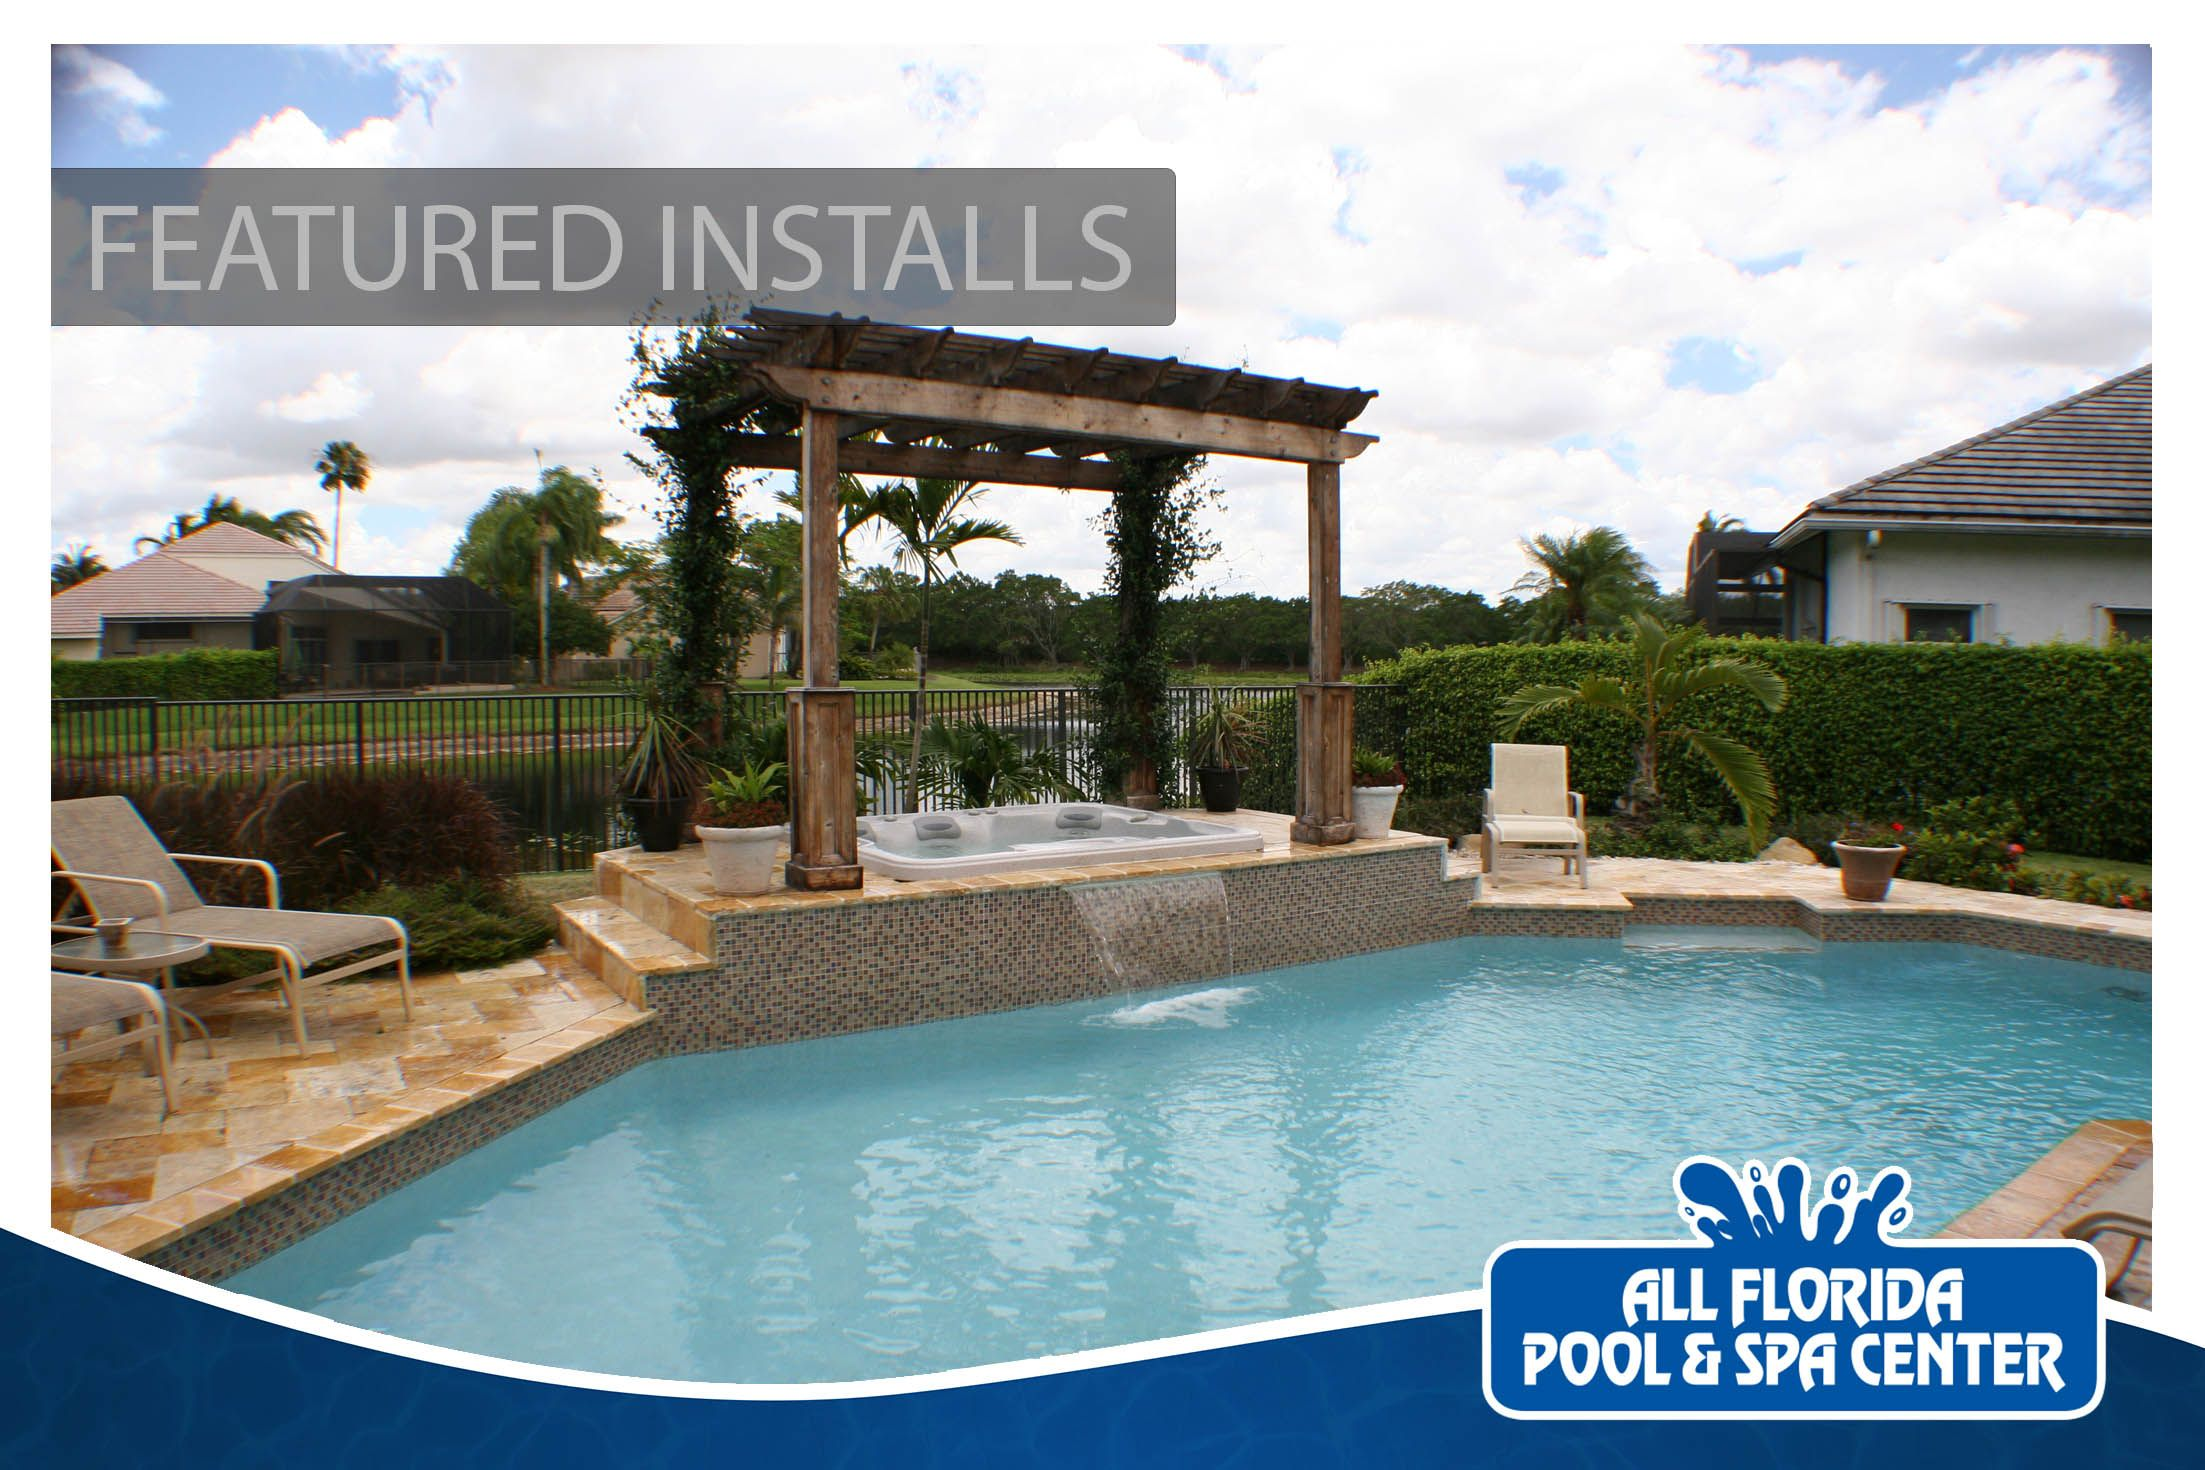 Featured Install A Pool Adds Value To Your Property And Your